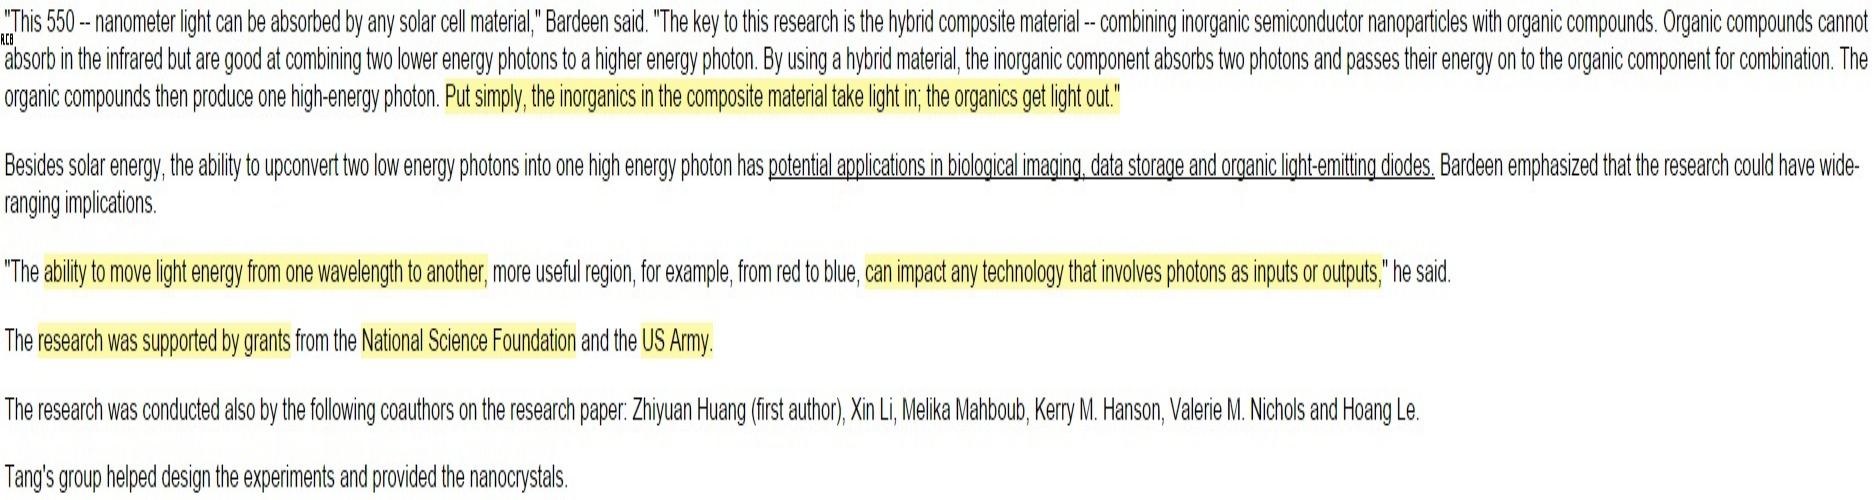 "7. Quotes about the technical details already covered above.      TLDR= ""The inorganics in the composite material take light in; the organics get light out."" (Bardeen)    8. (Didn't highlight this paragraph) Potential applications & uses for the infrared-sensitive materials = Medical, Data Storage & LED's.    9. Converting/Transmuting of light to different wavelengths can have an impact on any technology that uses photons as inputs or outputs.    10. Research was partially funded (grant money) by US Army= Night-vision use cases? Or, it could be about using this technology in data storage/transmission/reconnaissance."